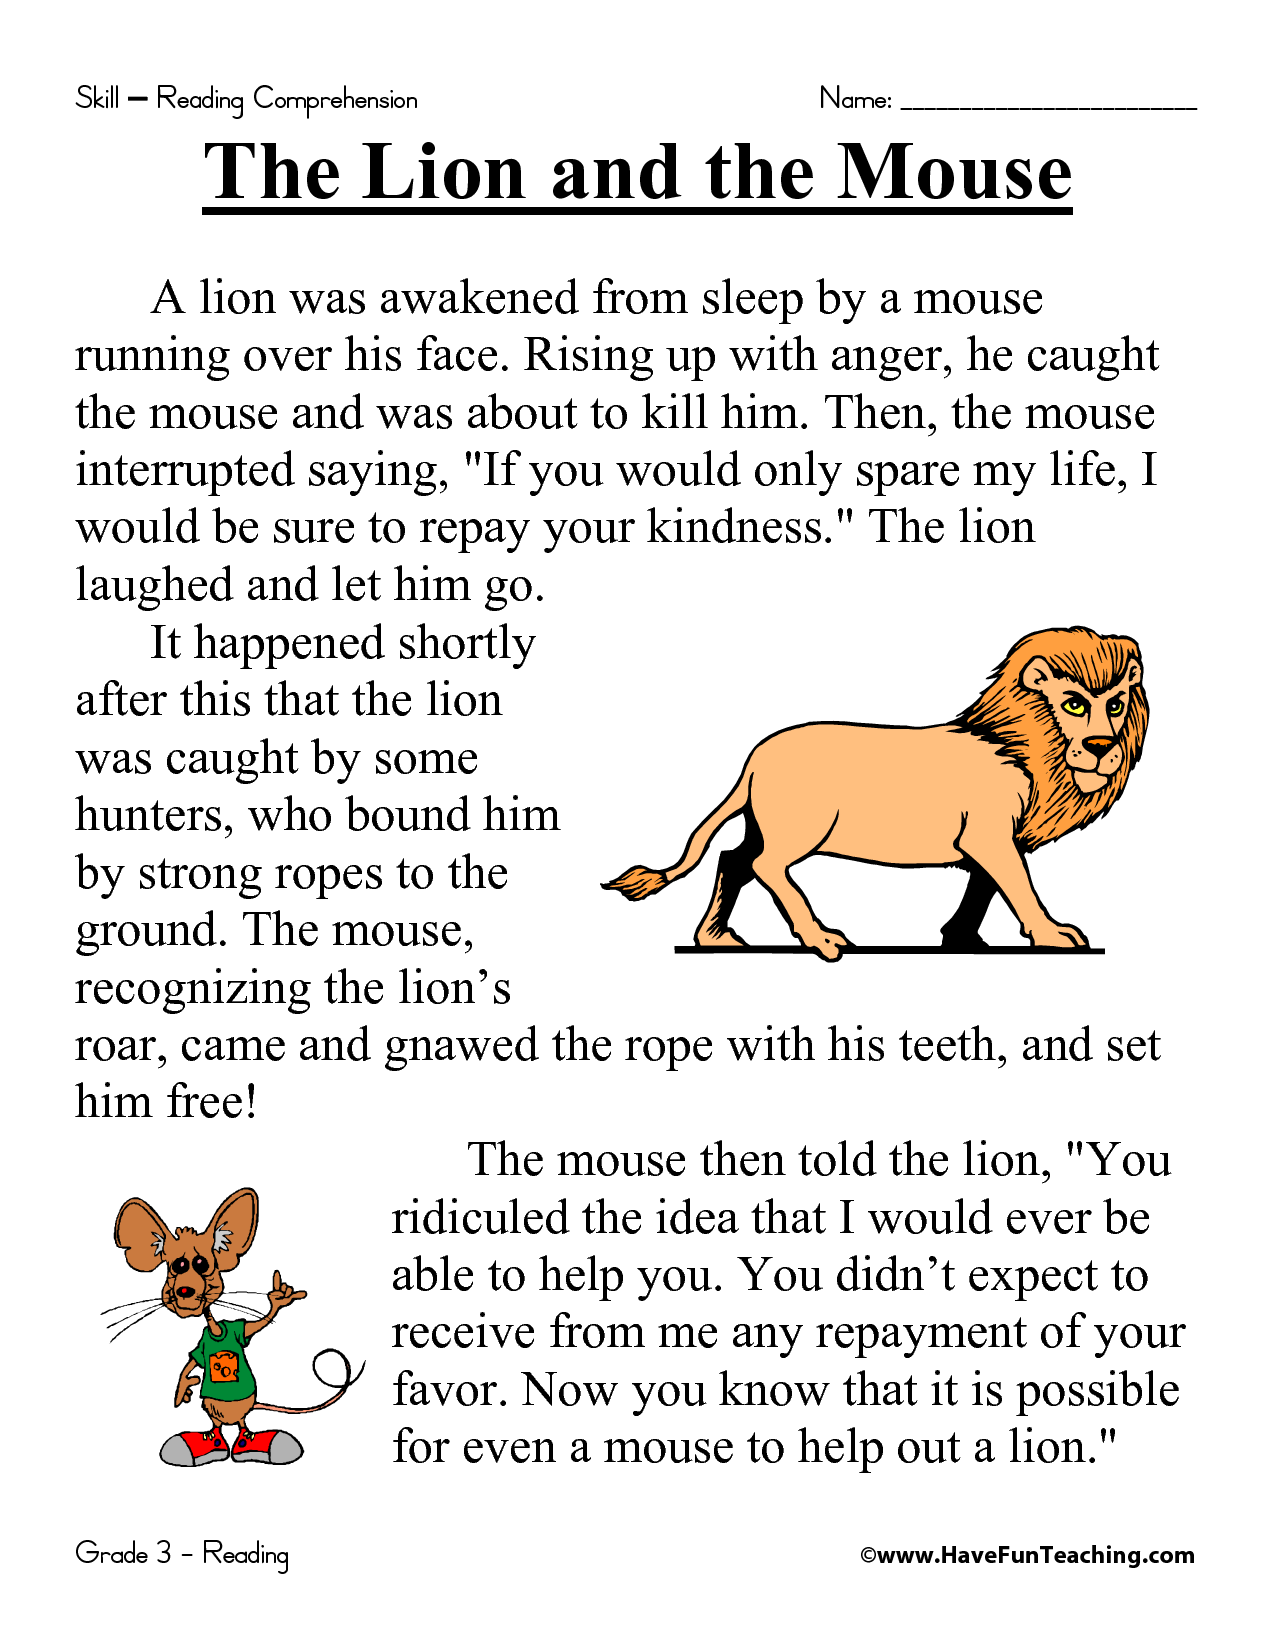 Worksheet Comprehension Reading printable reading comprehension worksheets inc exercises for first grade the lion and mouse worksheet